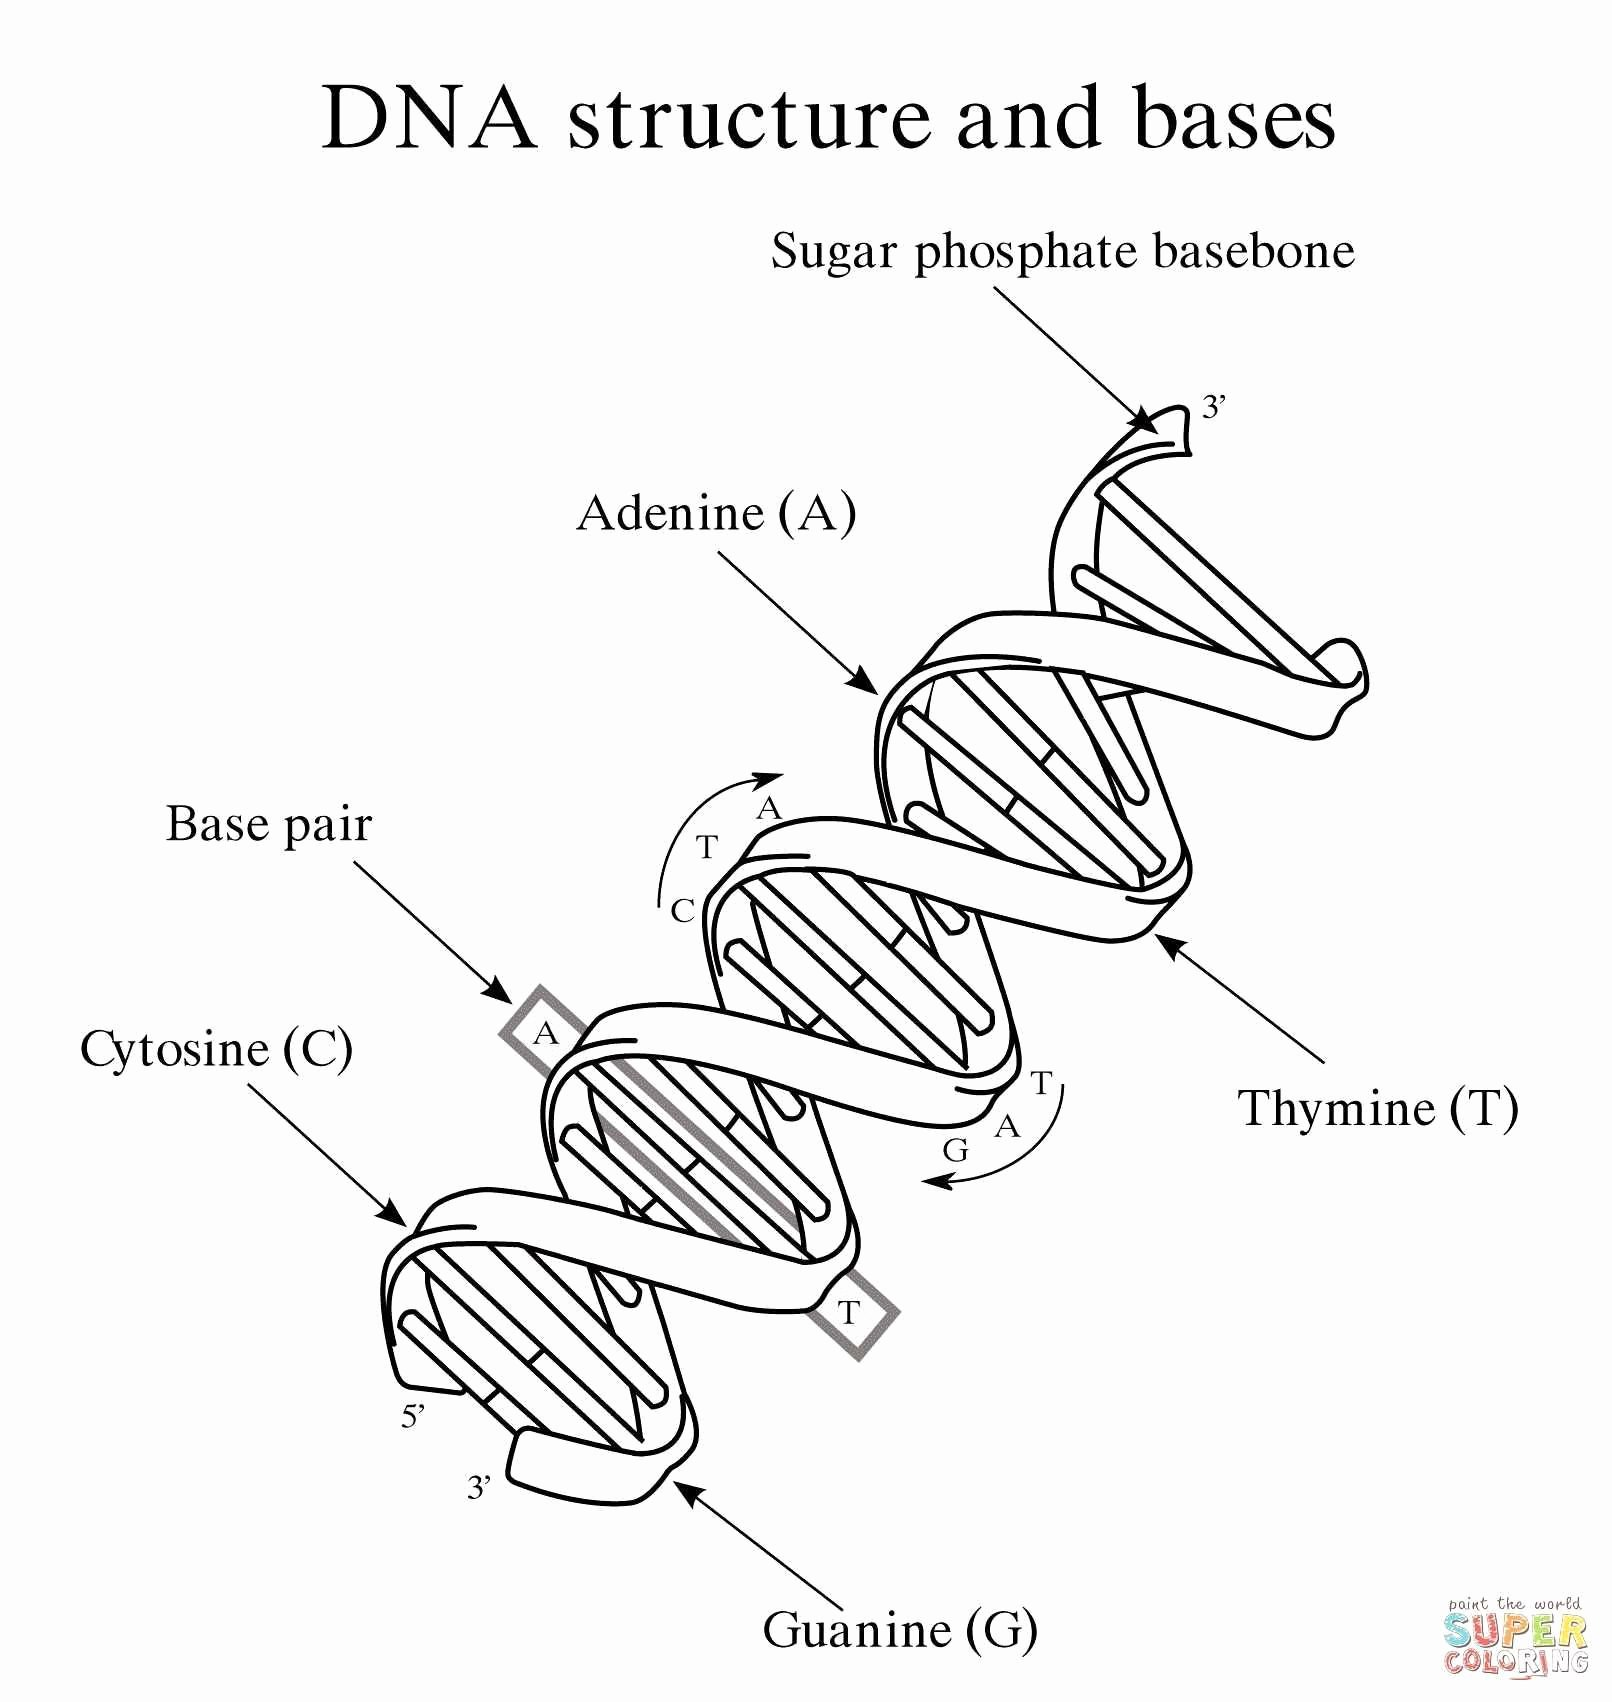 Dna the Double Helix Worksheet Best Of the Double Helix Worksheet Answers